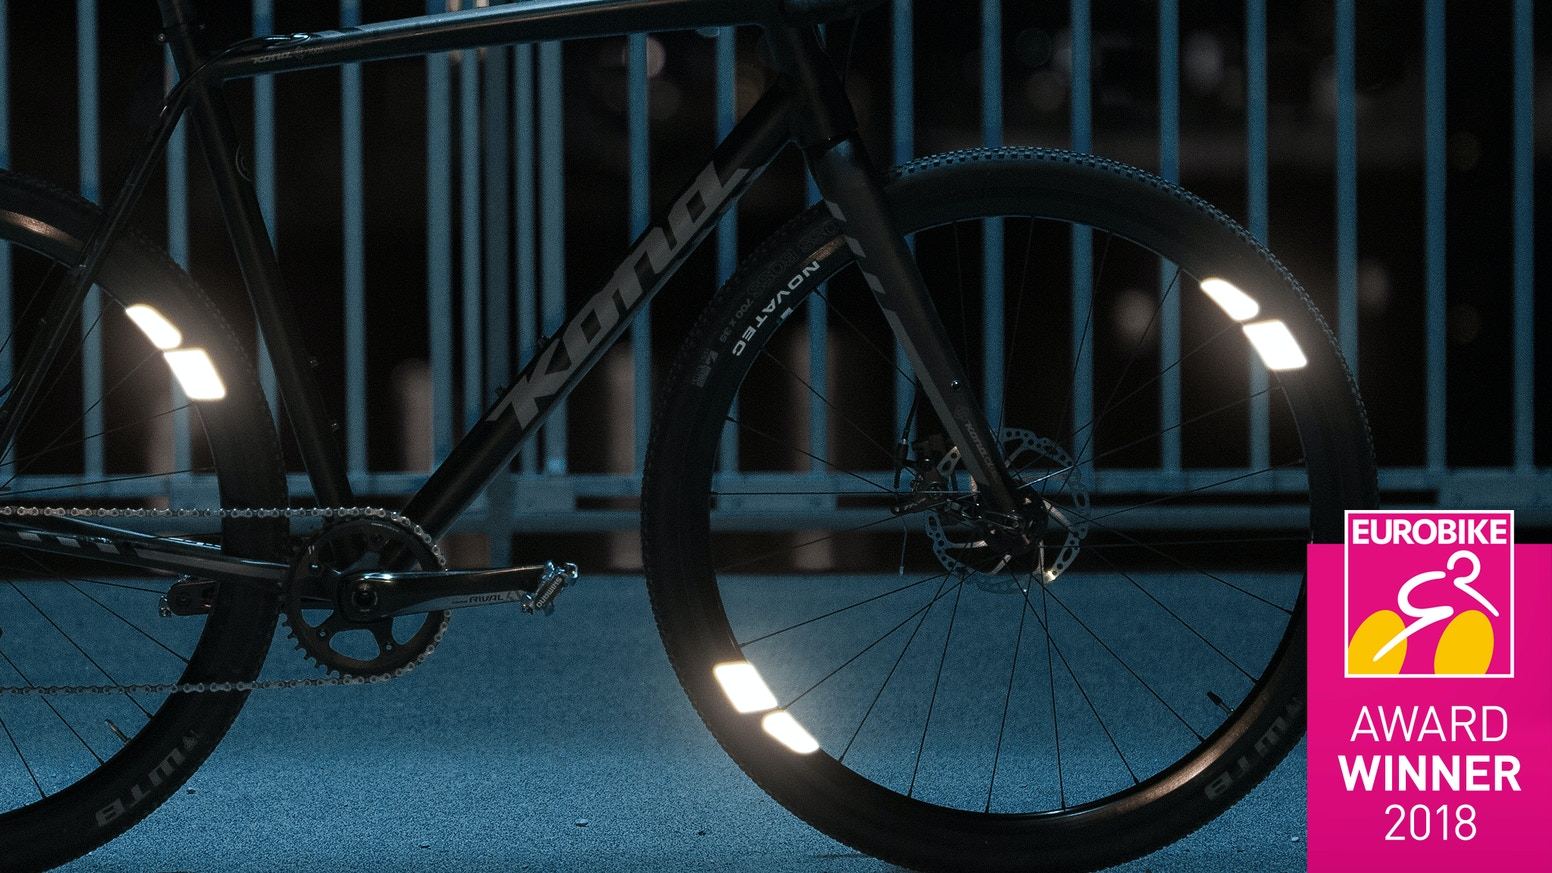 FLECTR 360 is winner of the Eurobike-Award 2018 & the first line of defense for your night ride! FLECTR 360 now comes in a unisize version that fits almost every size of rim.